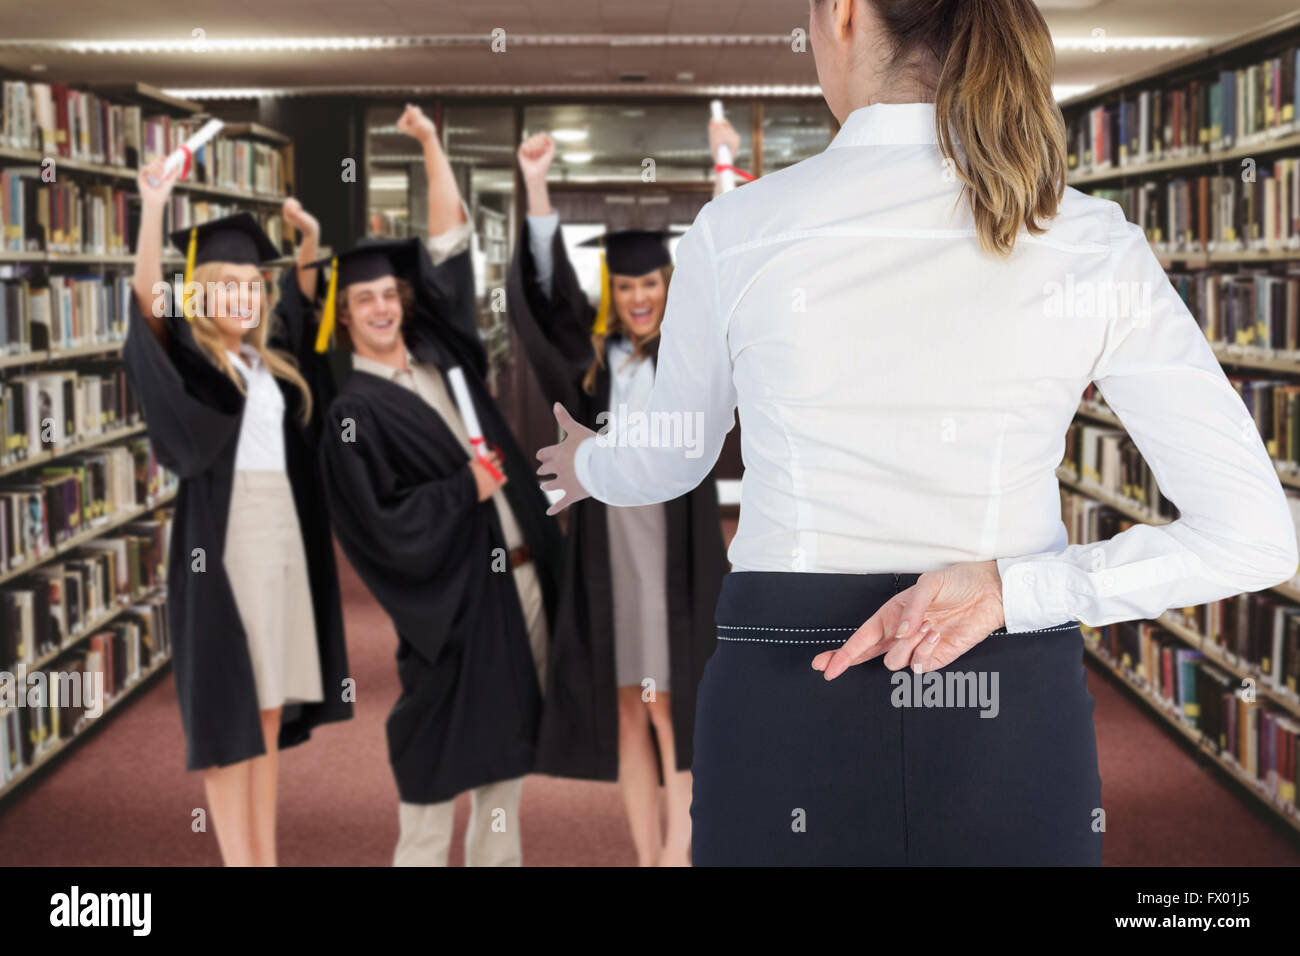 Composite image of businesswoman offering handshake with fingers crossed behind her back - Stock Image